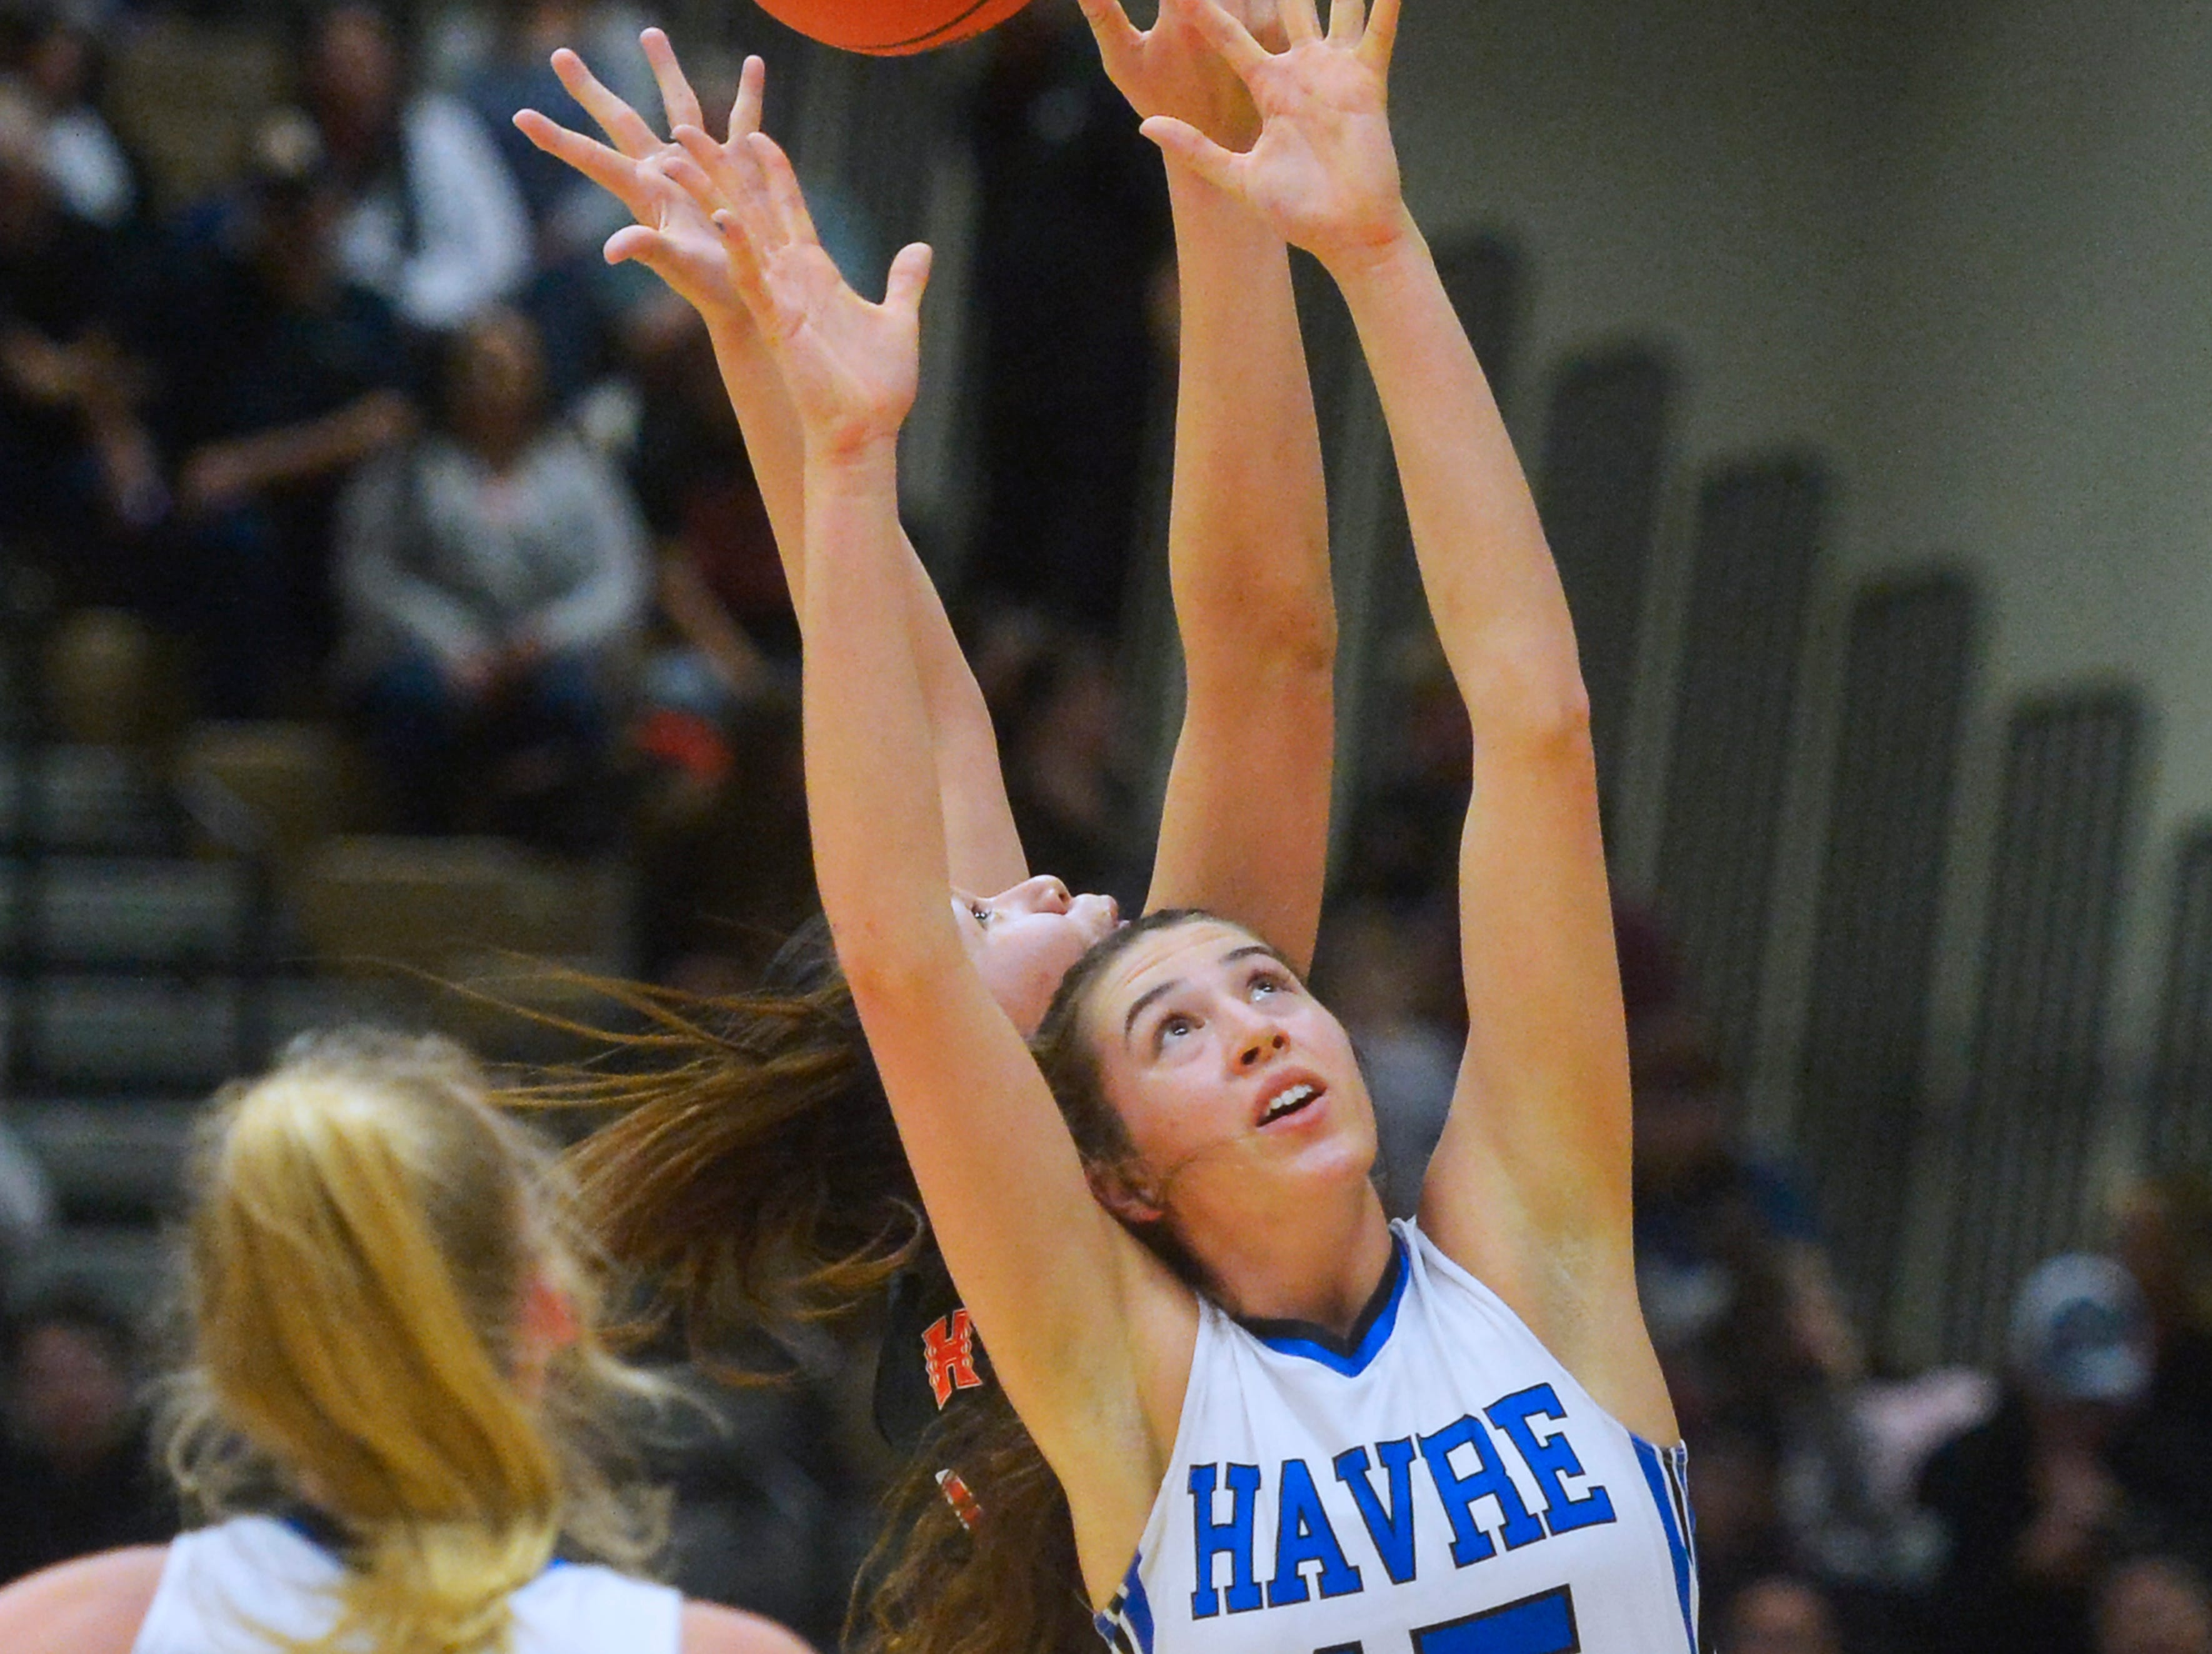 Havre's Loy Waid attempts to grab a rebound in the title game of the State Class A Basketball Tournament against Hardin in the Four Seasons Arena, Saturday.